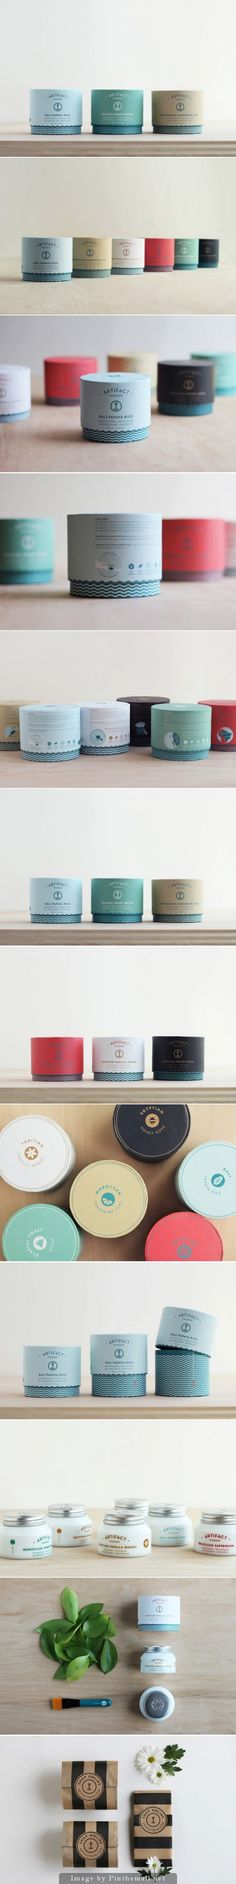 Artifact Masque http://www.packagingoftheworld.com/2014/06/artifact-masque.html: